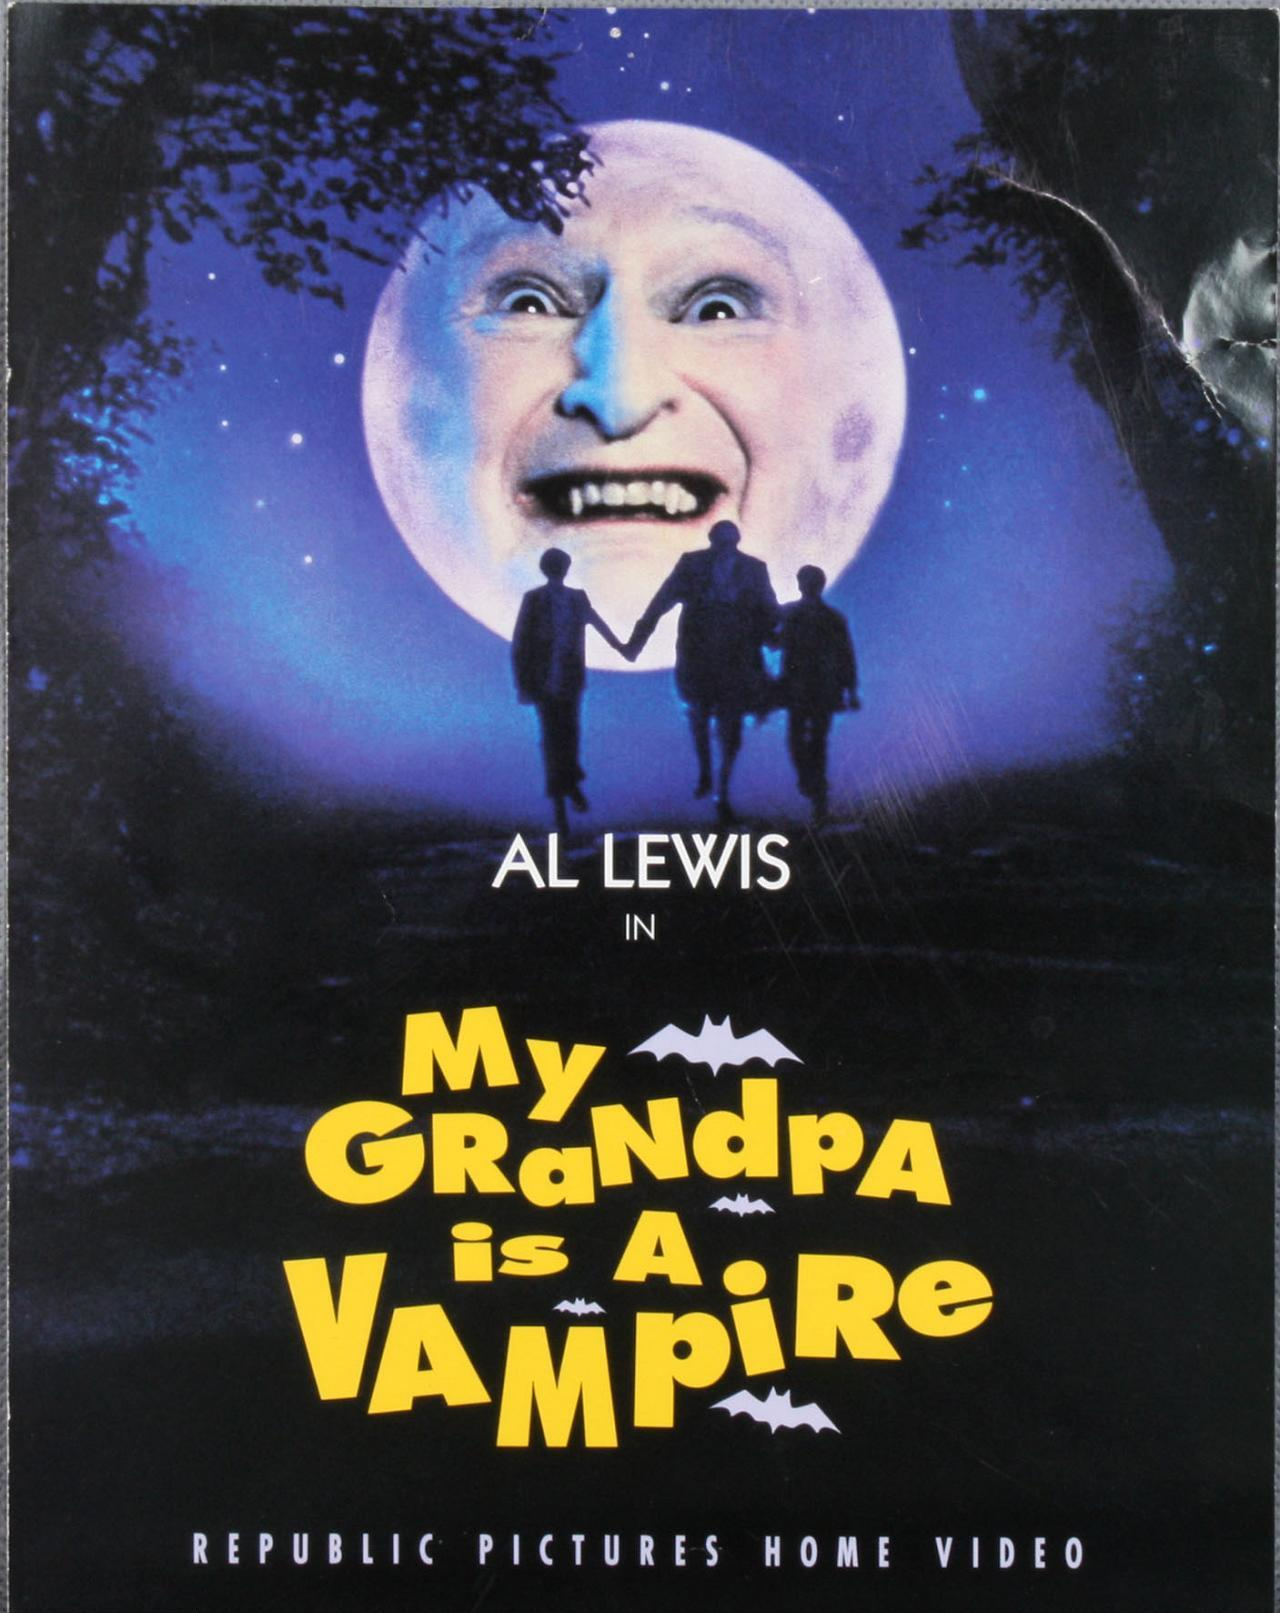 68712 03 lg - Interview with the Grampire: David Blyth Talks Working with Al Lewis and More